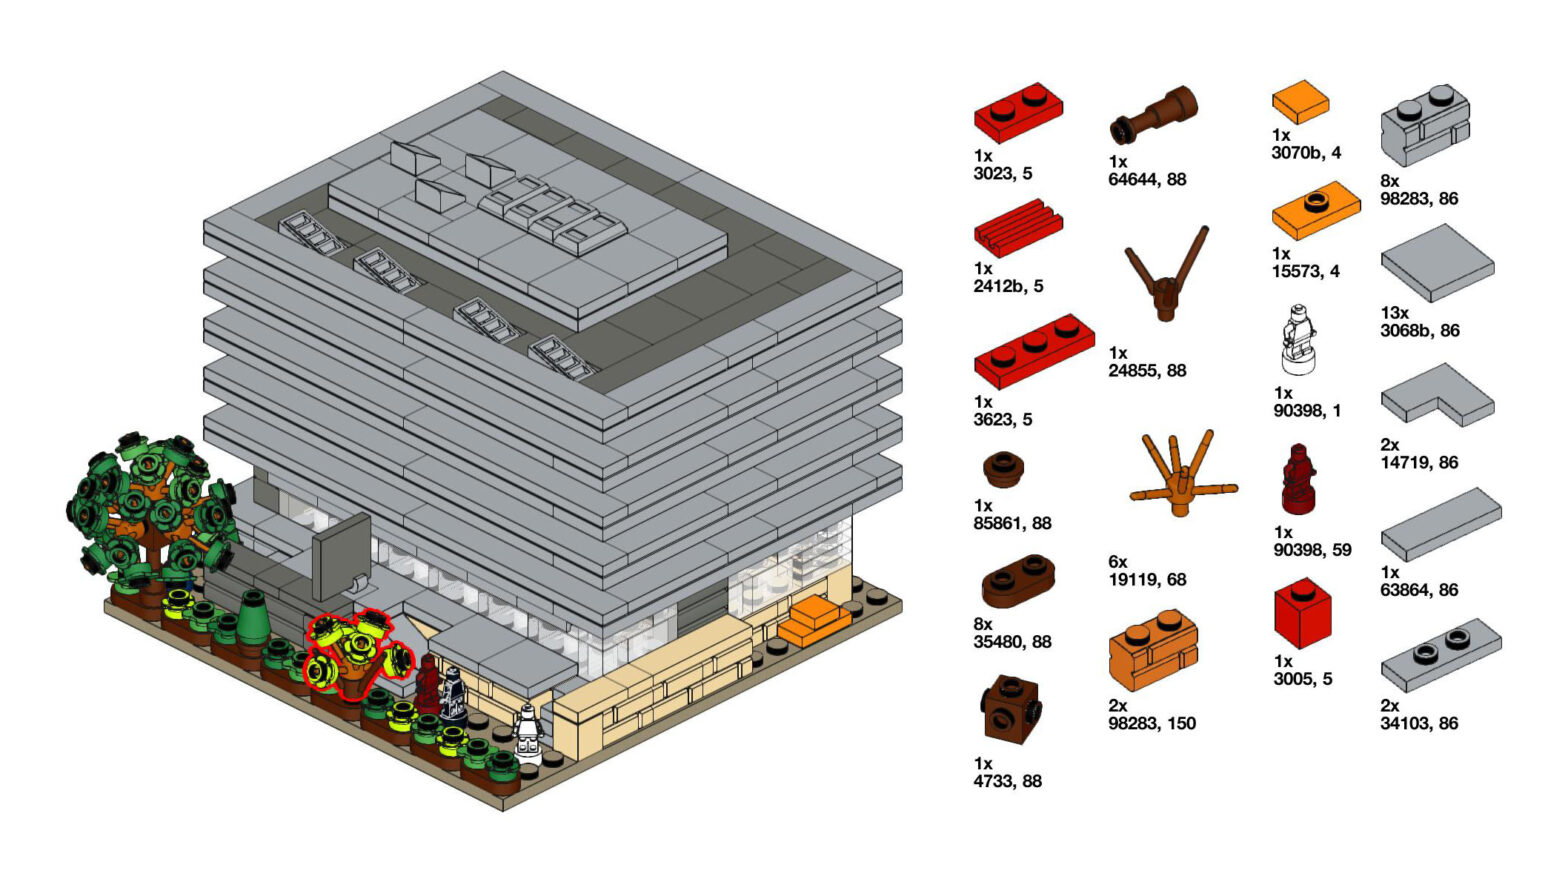 Classic Lego instructions showing Main Library made out of Lego and a partial parts inventory.